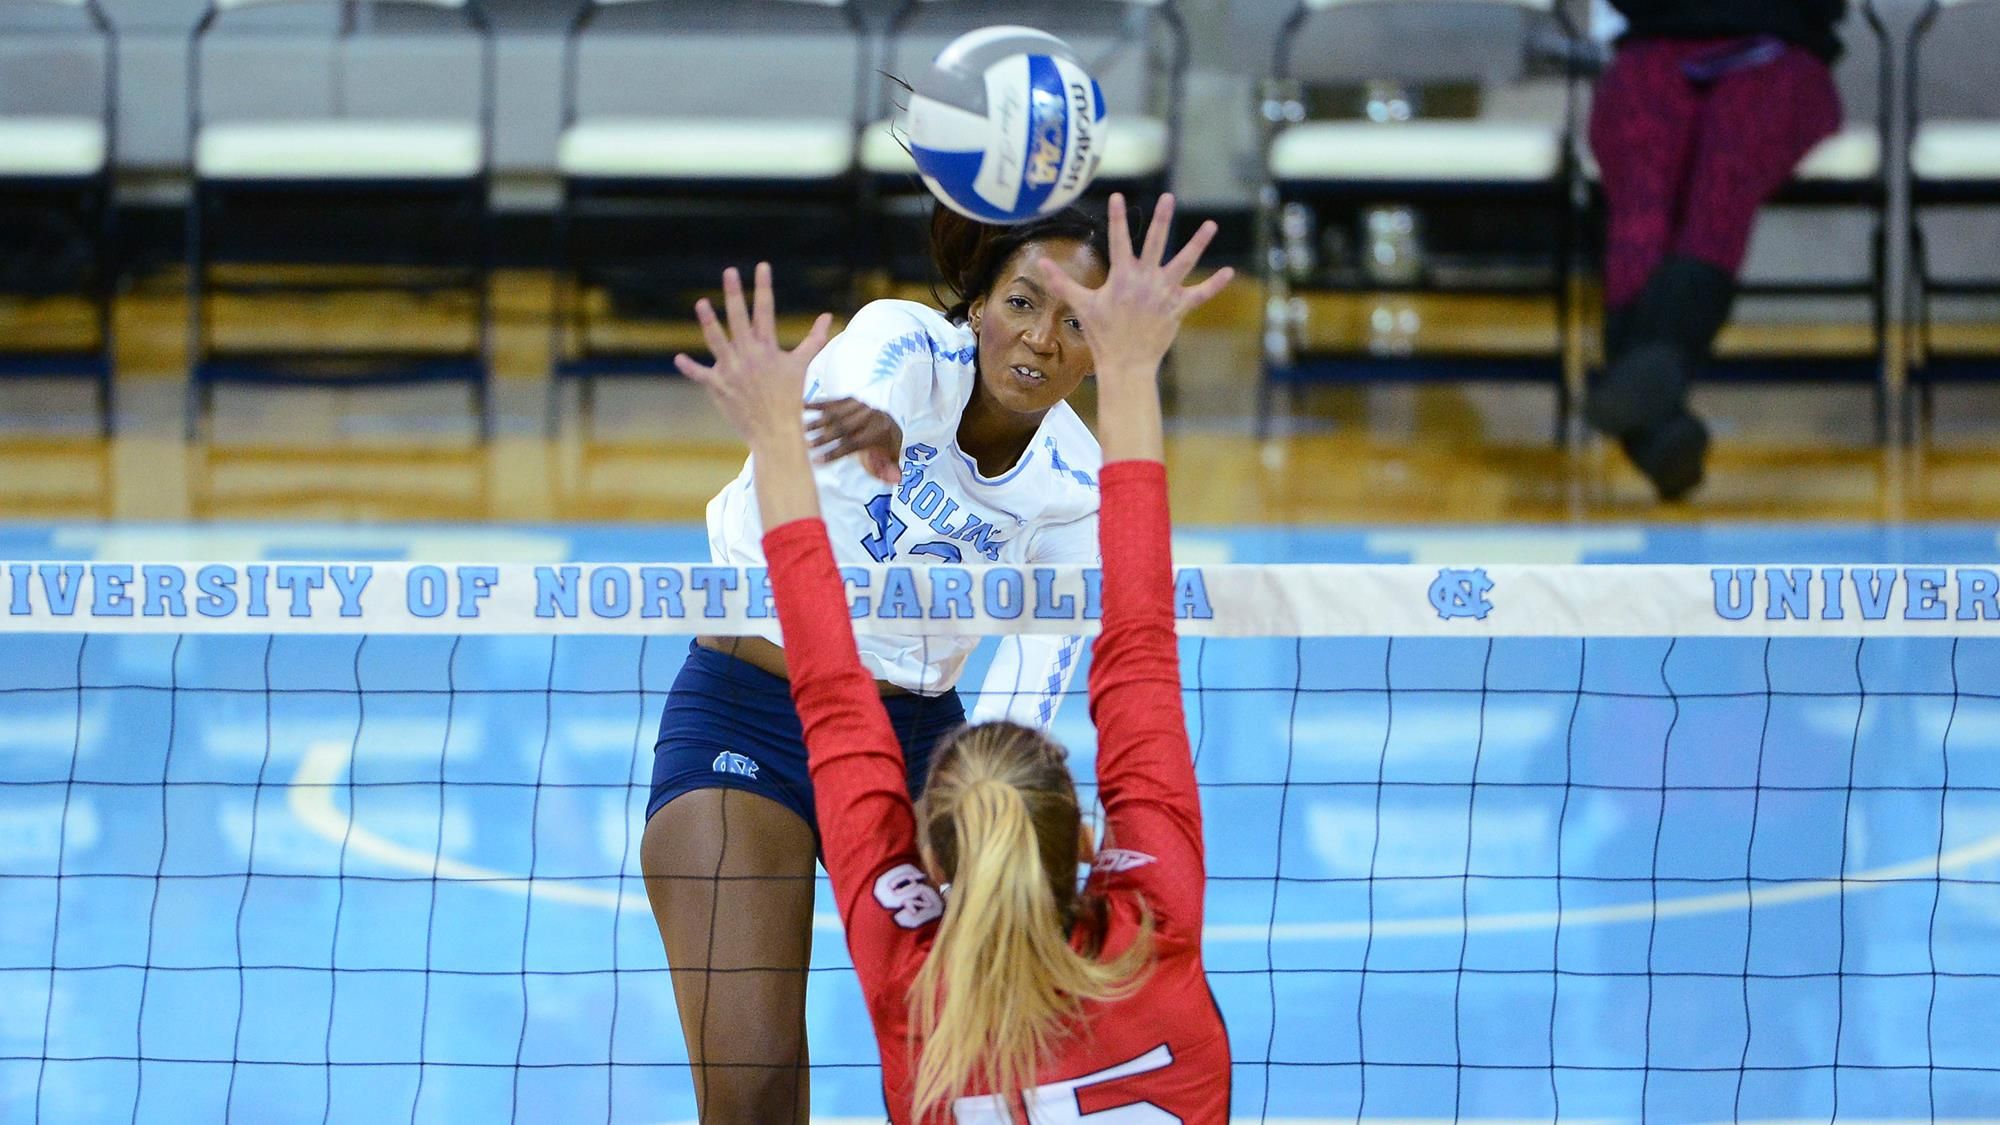 Taylor Leath - 2014 Volleyball Roster - University of North Carolina